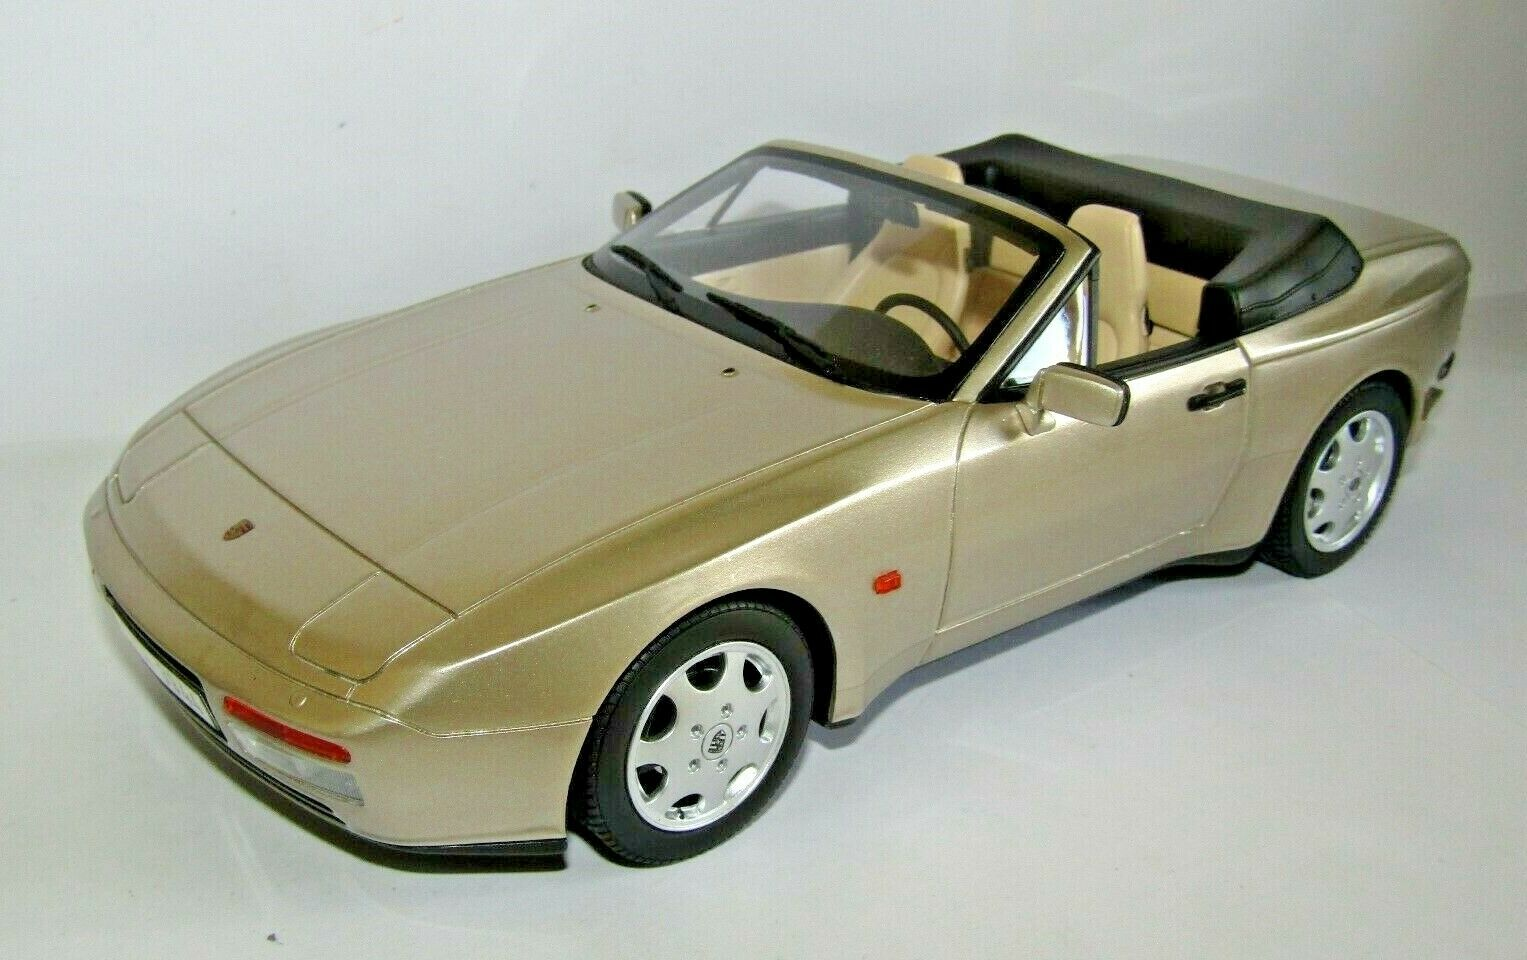 GT SPIRIT PORSCHE 944 S2 CABRIOLET gold 1 18 SCALE GT002CS 1 OF 1,000